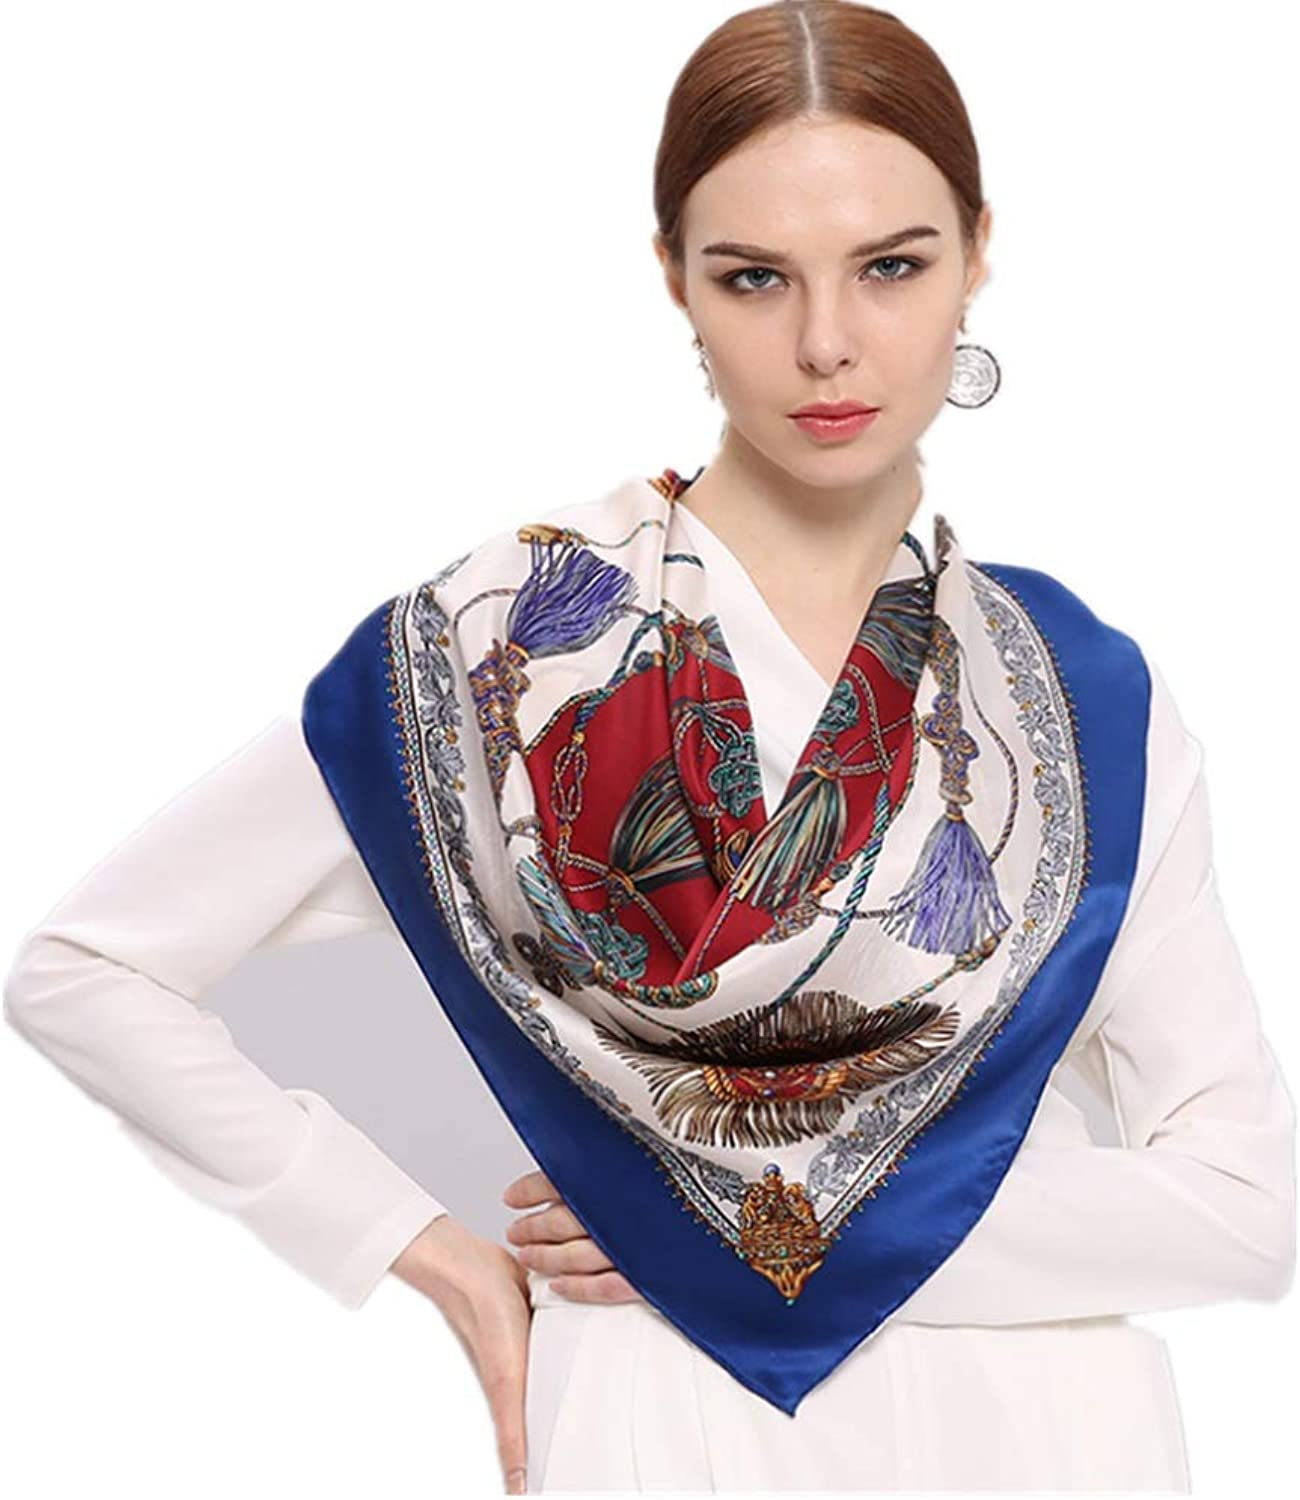 Women's Scarves Spring and Summer Silk Silk Big Square Scarf Classic Chain Silk Scarf European and American Ladies Long Fashion Scarf (color   bluee)